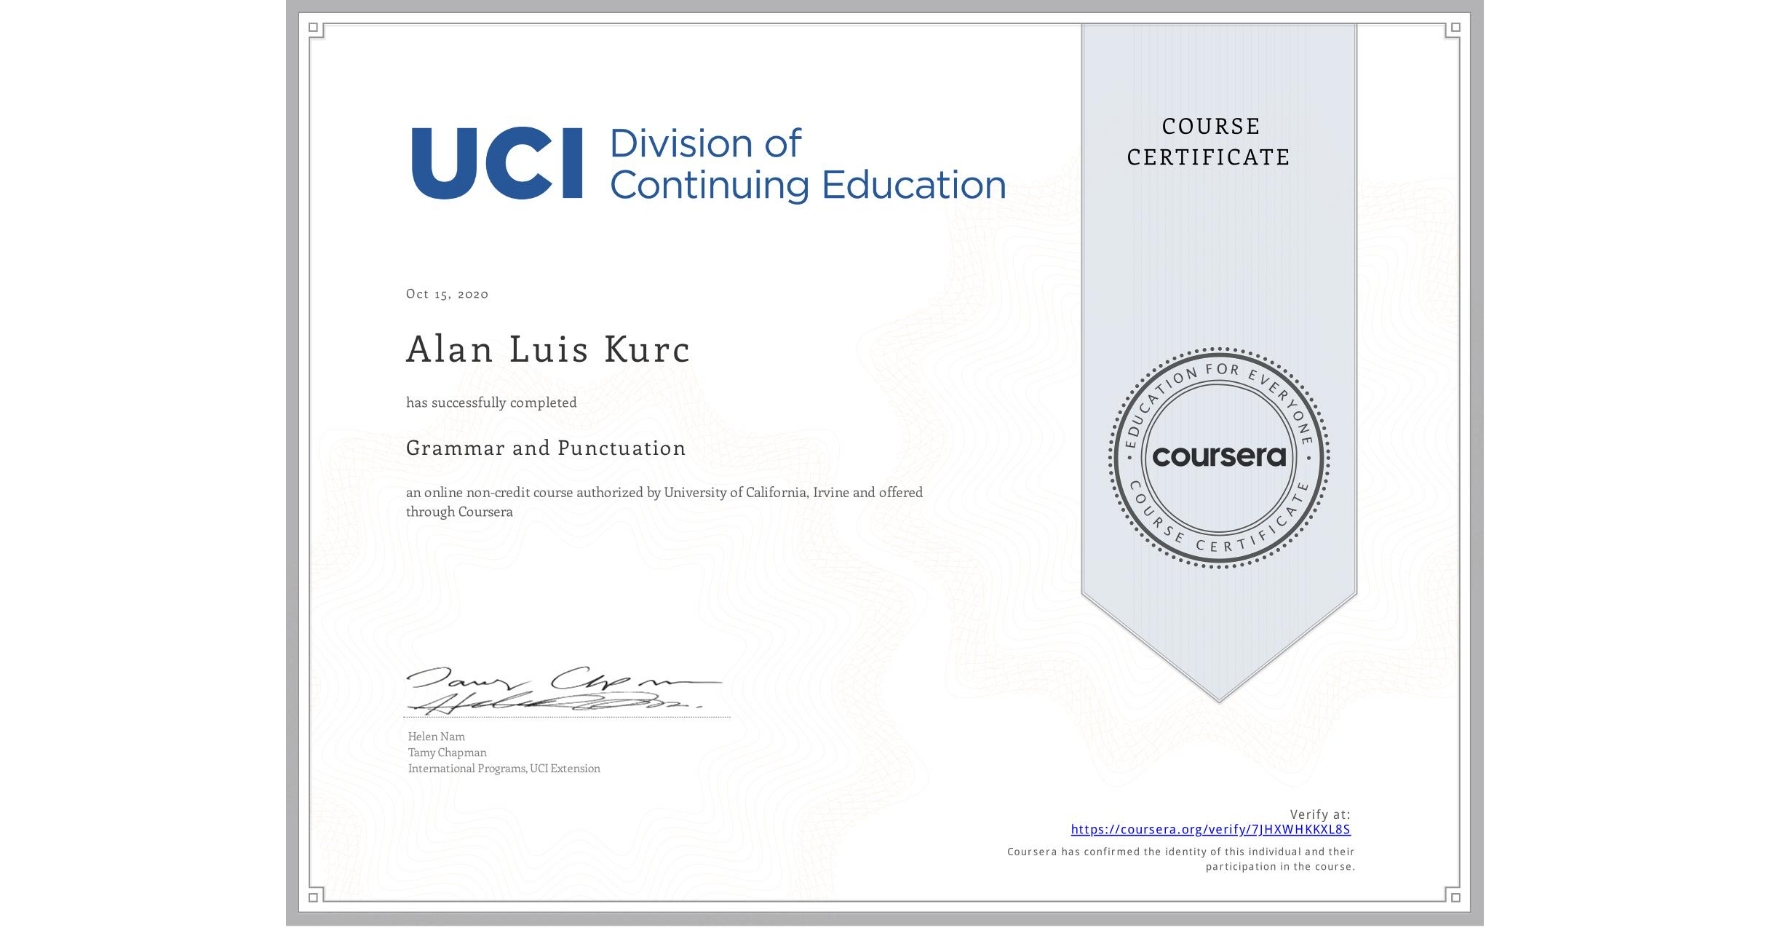 View certificate for Alan Luis Kurc, Grammar and Punctuation, an online non-credit course authorized by University of California, Irvine and offered through Coursera